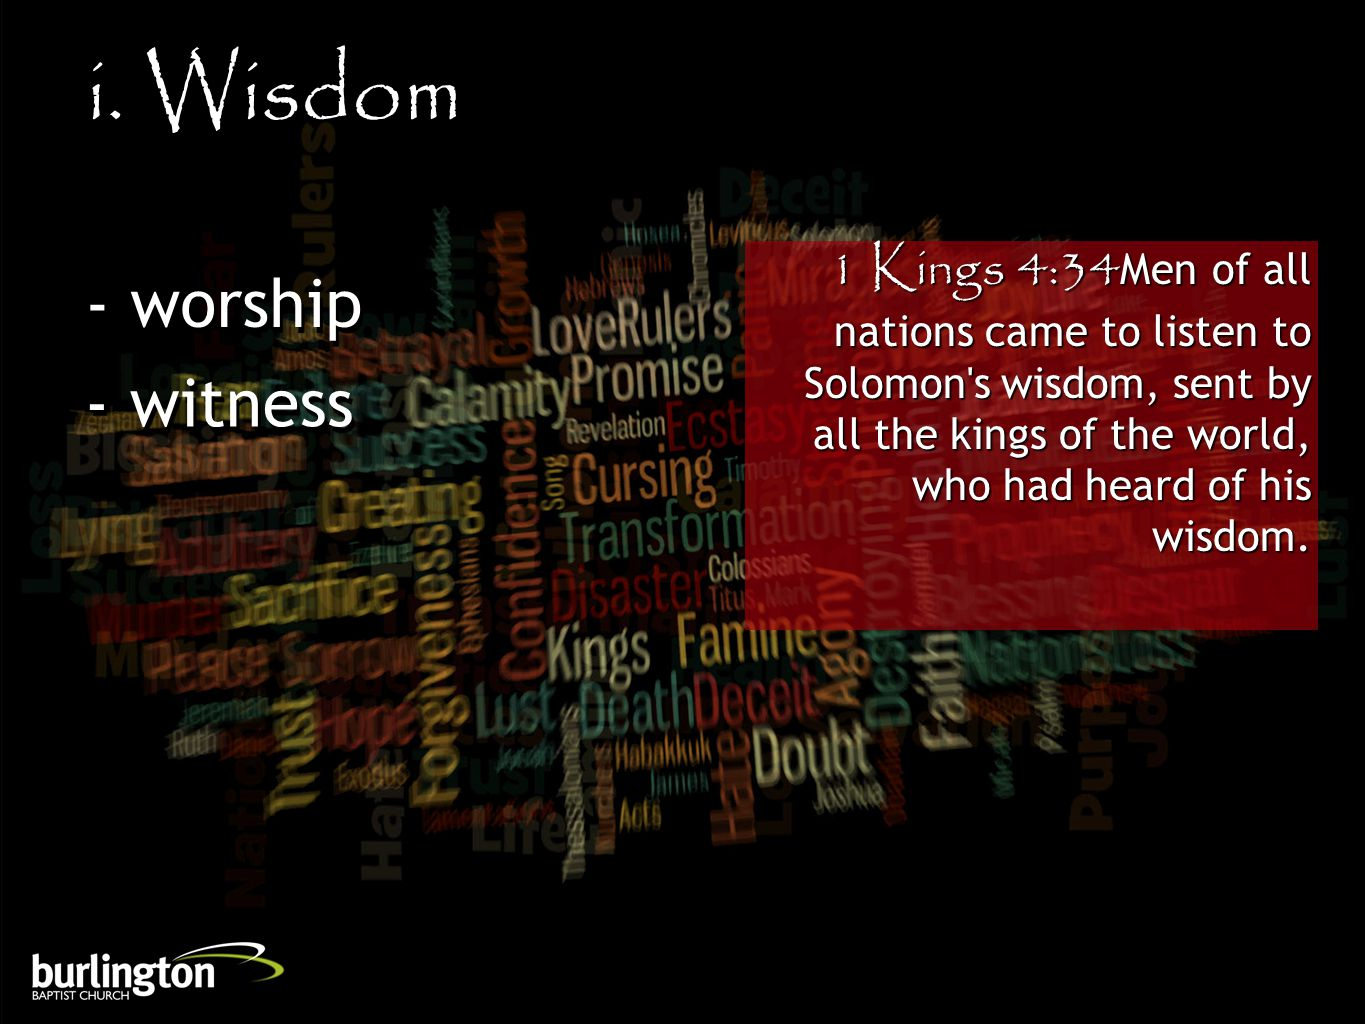 1 Kings 4:34Men of all nations came to listen to Solomon's wisdom, sent by all the kings of the world, who had heard of his wisdom. i. Wisdom - worshi